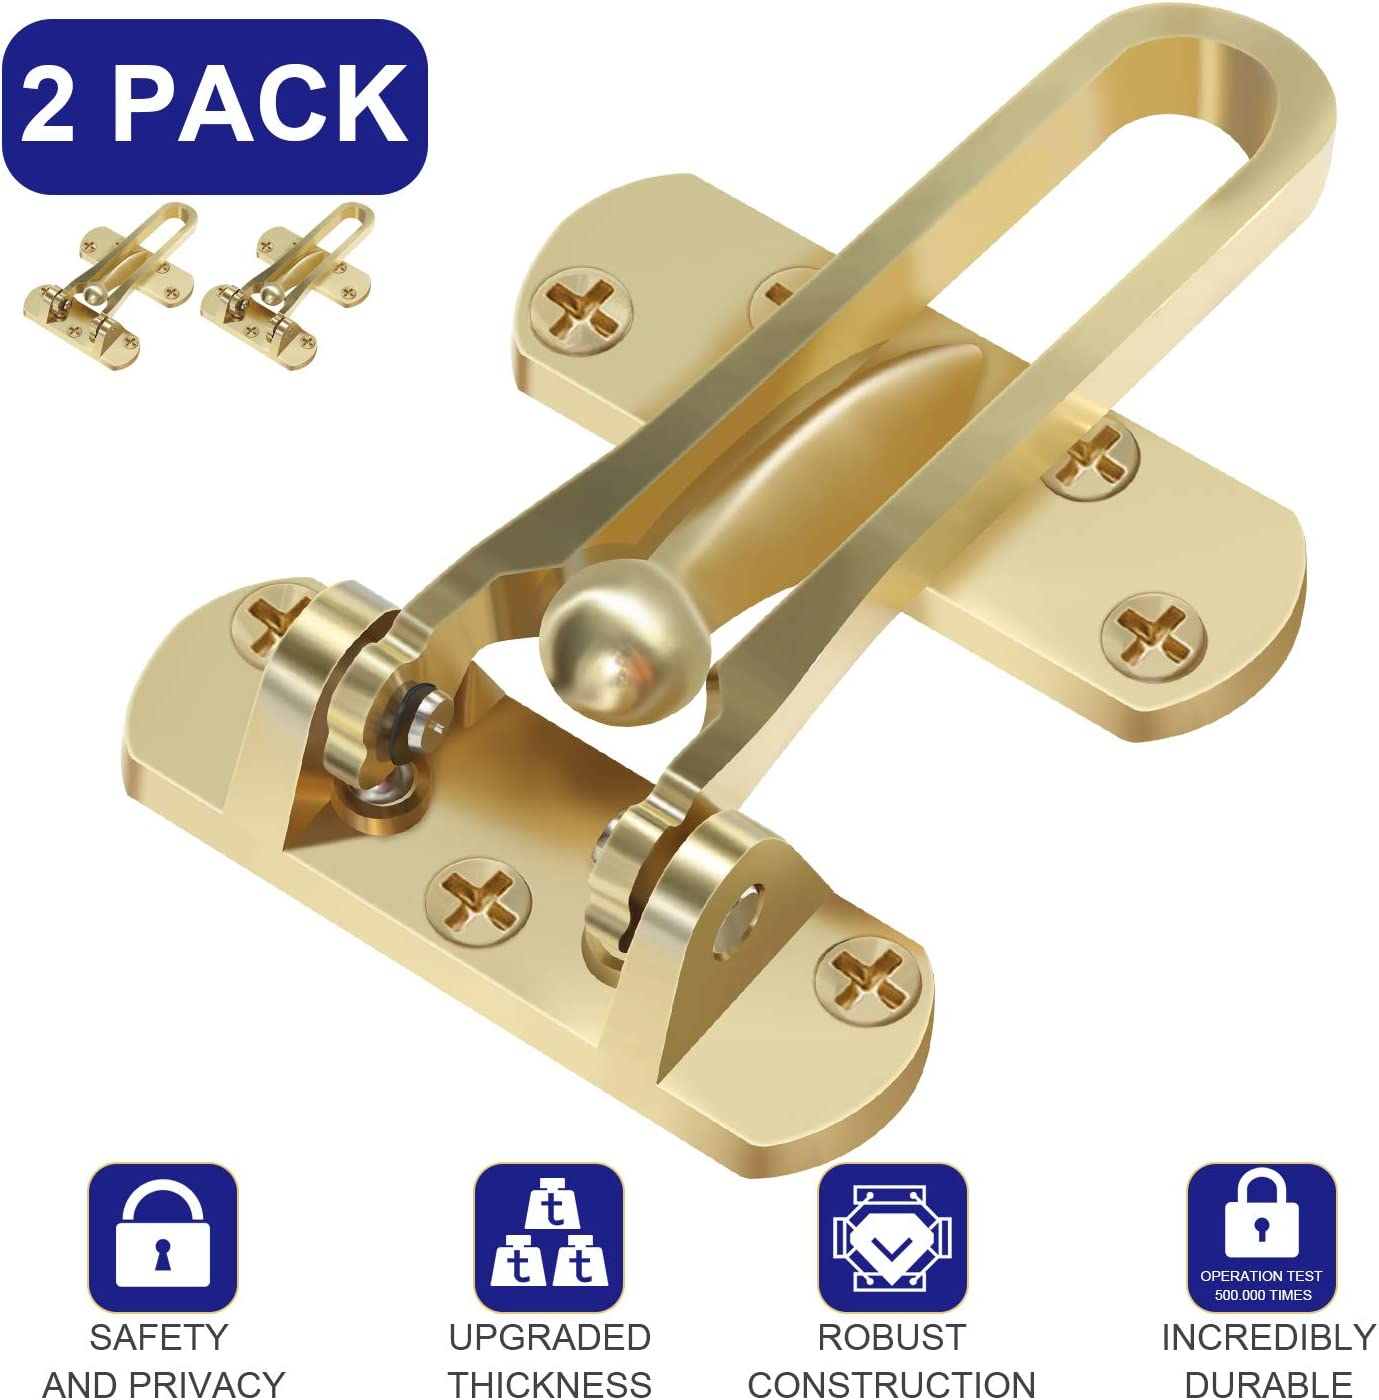 Pakesi Home Security Door Lock, Door Reinforcement Lock, Portable Hotel Door lockfor Swing-in Doors, Thicken Solid Aluminium Alloy, Satin Nickel- Gold 2 Pack